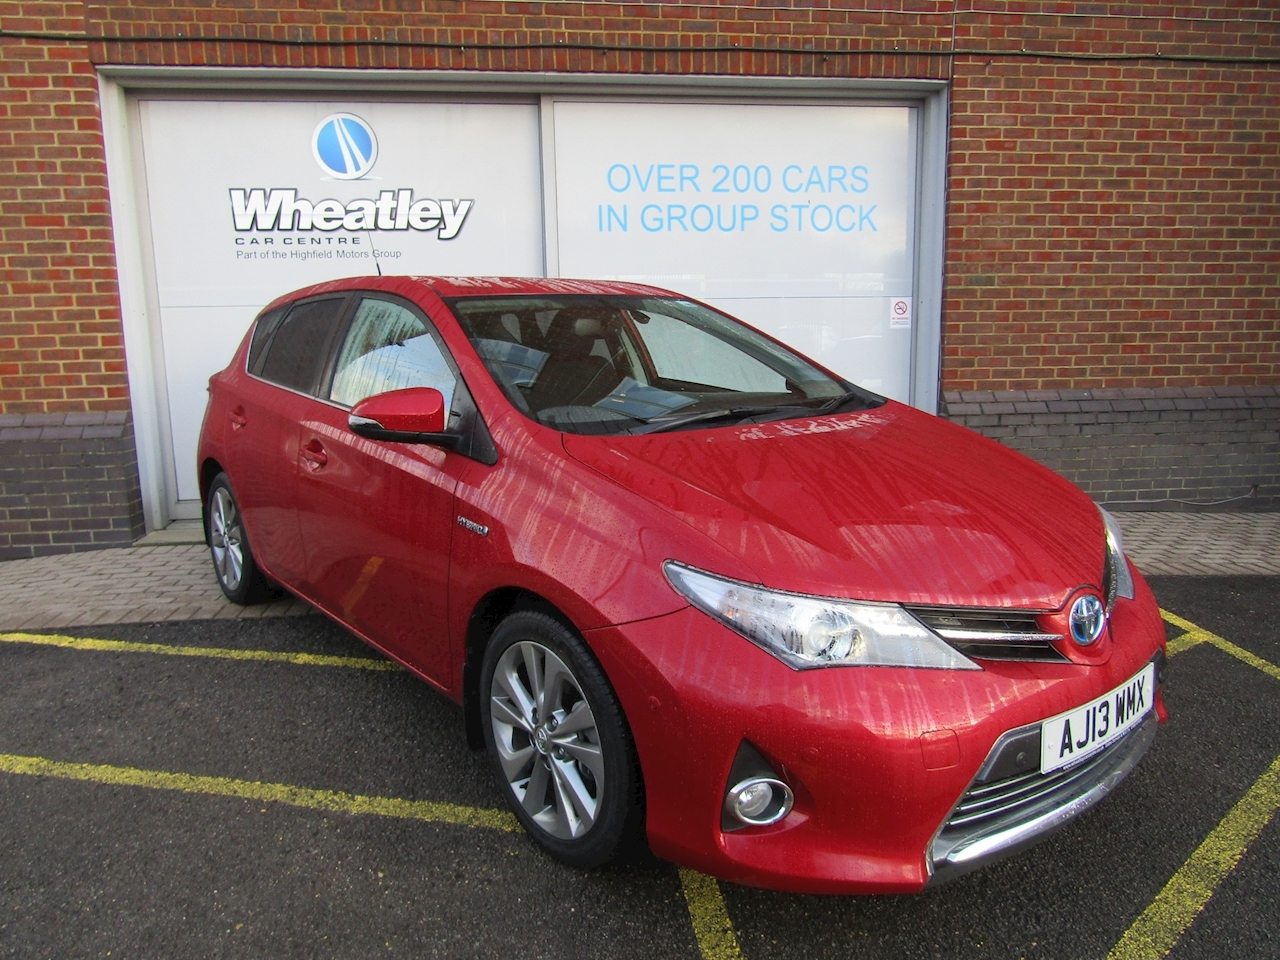 Auris Vvt-I Excel Hatchback 1.8 Cvt Petrol/Electric